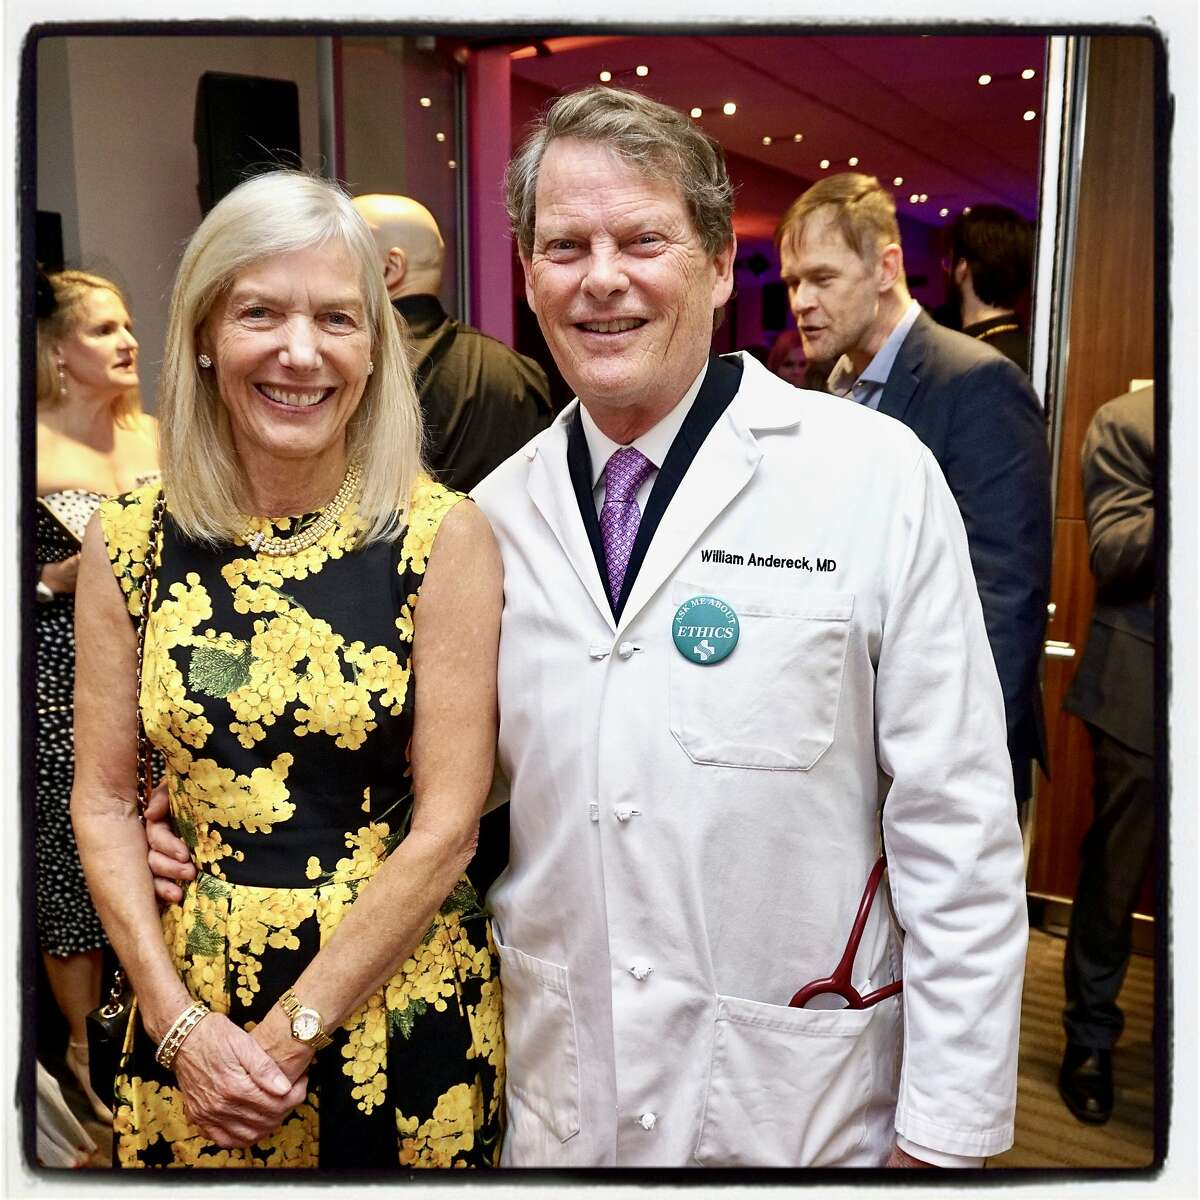 Helga Andereck and her husband, Dr. William Andereck, at the CPMC gala opening. Feb. 7, 2019.